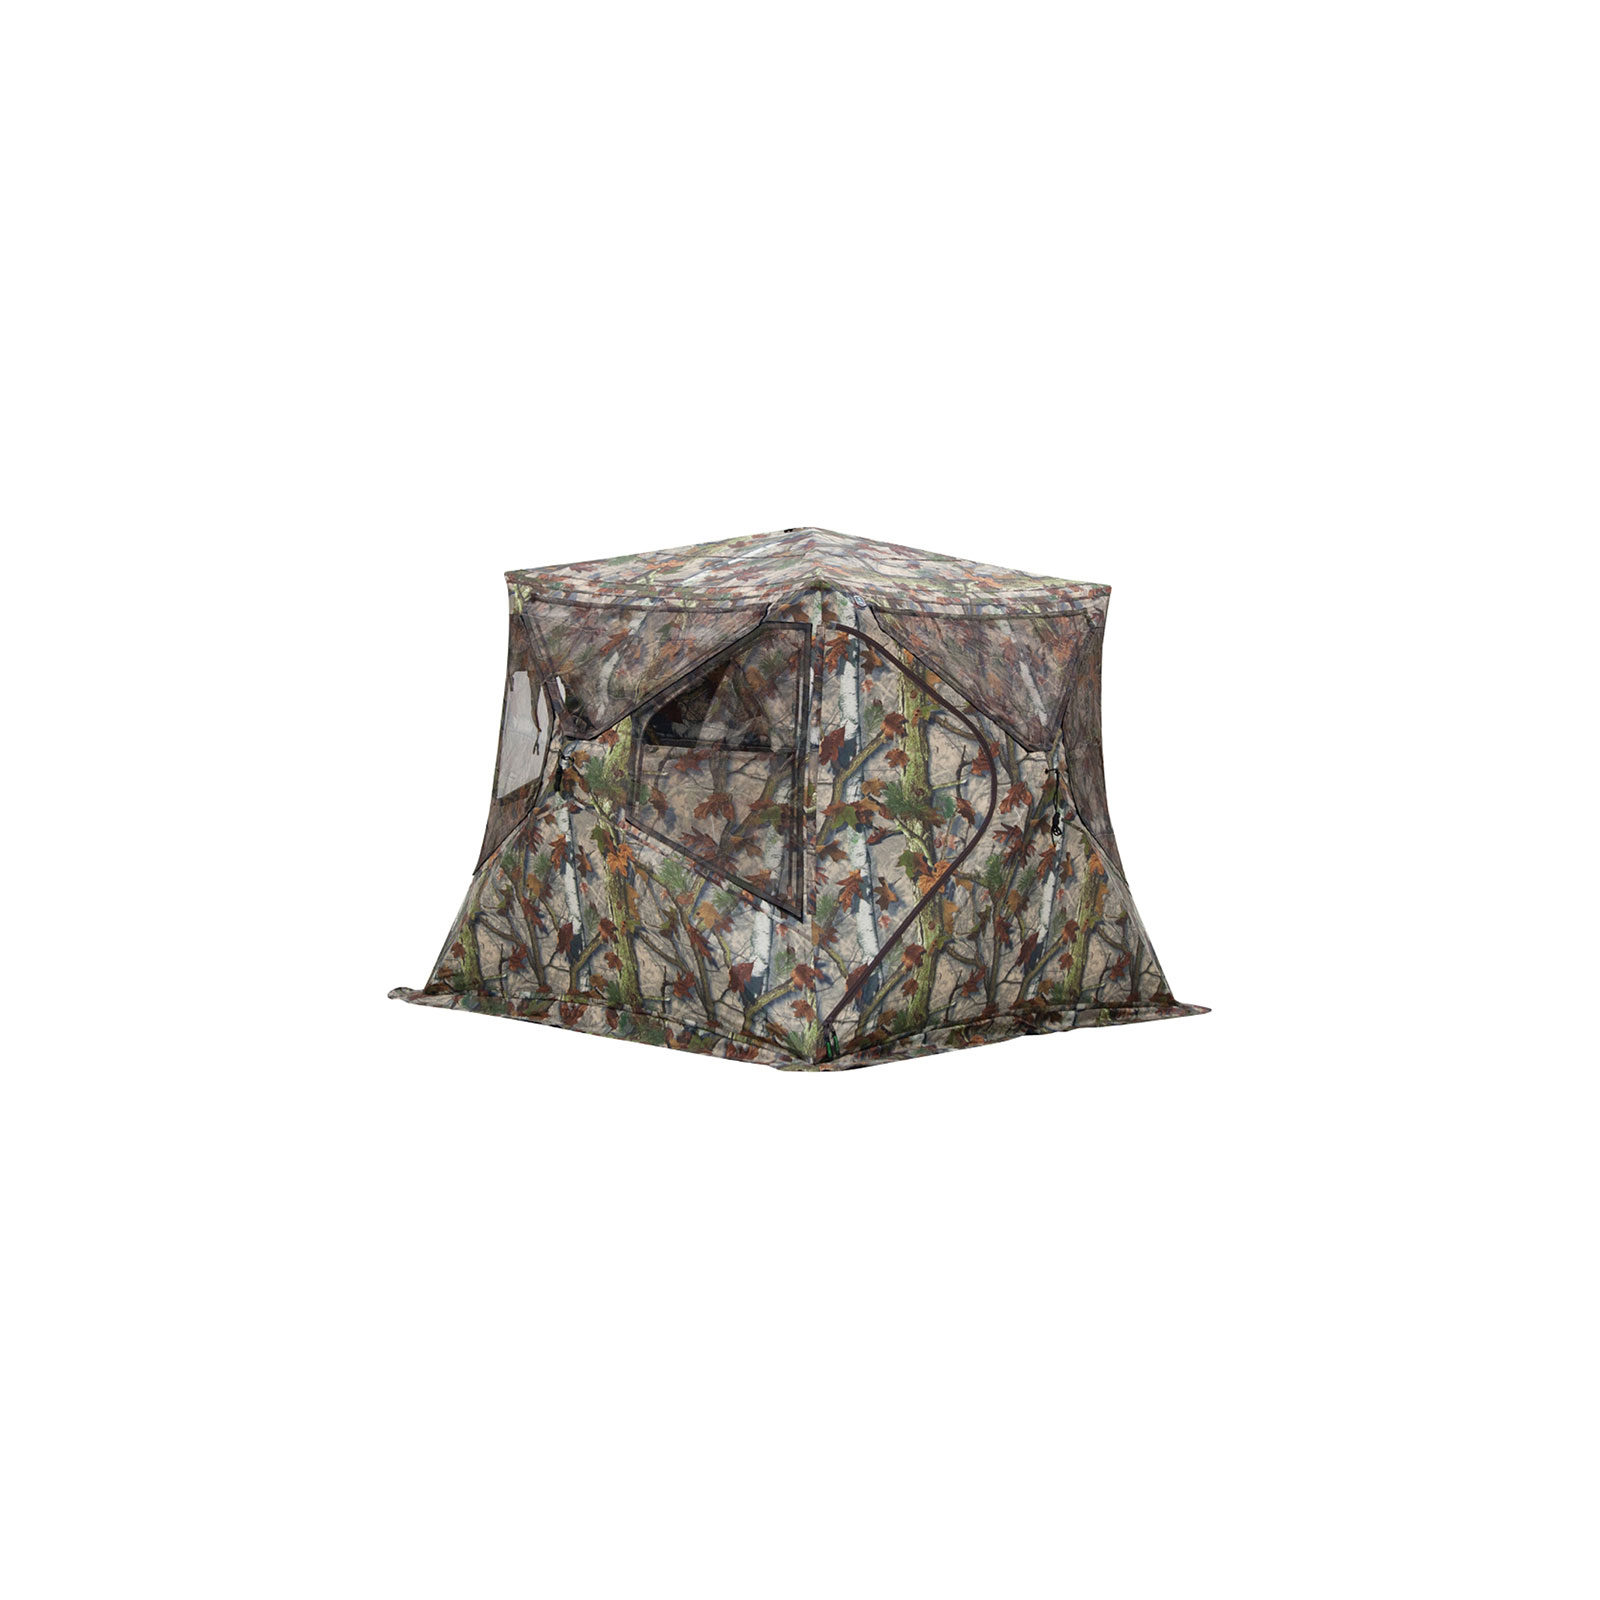 barronett girls Select easy-to-setup ground blinds and portable camouflage hunting blinds from cabela's to hunt any area faster and quieter, while staying more concealed.